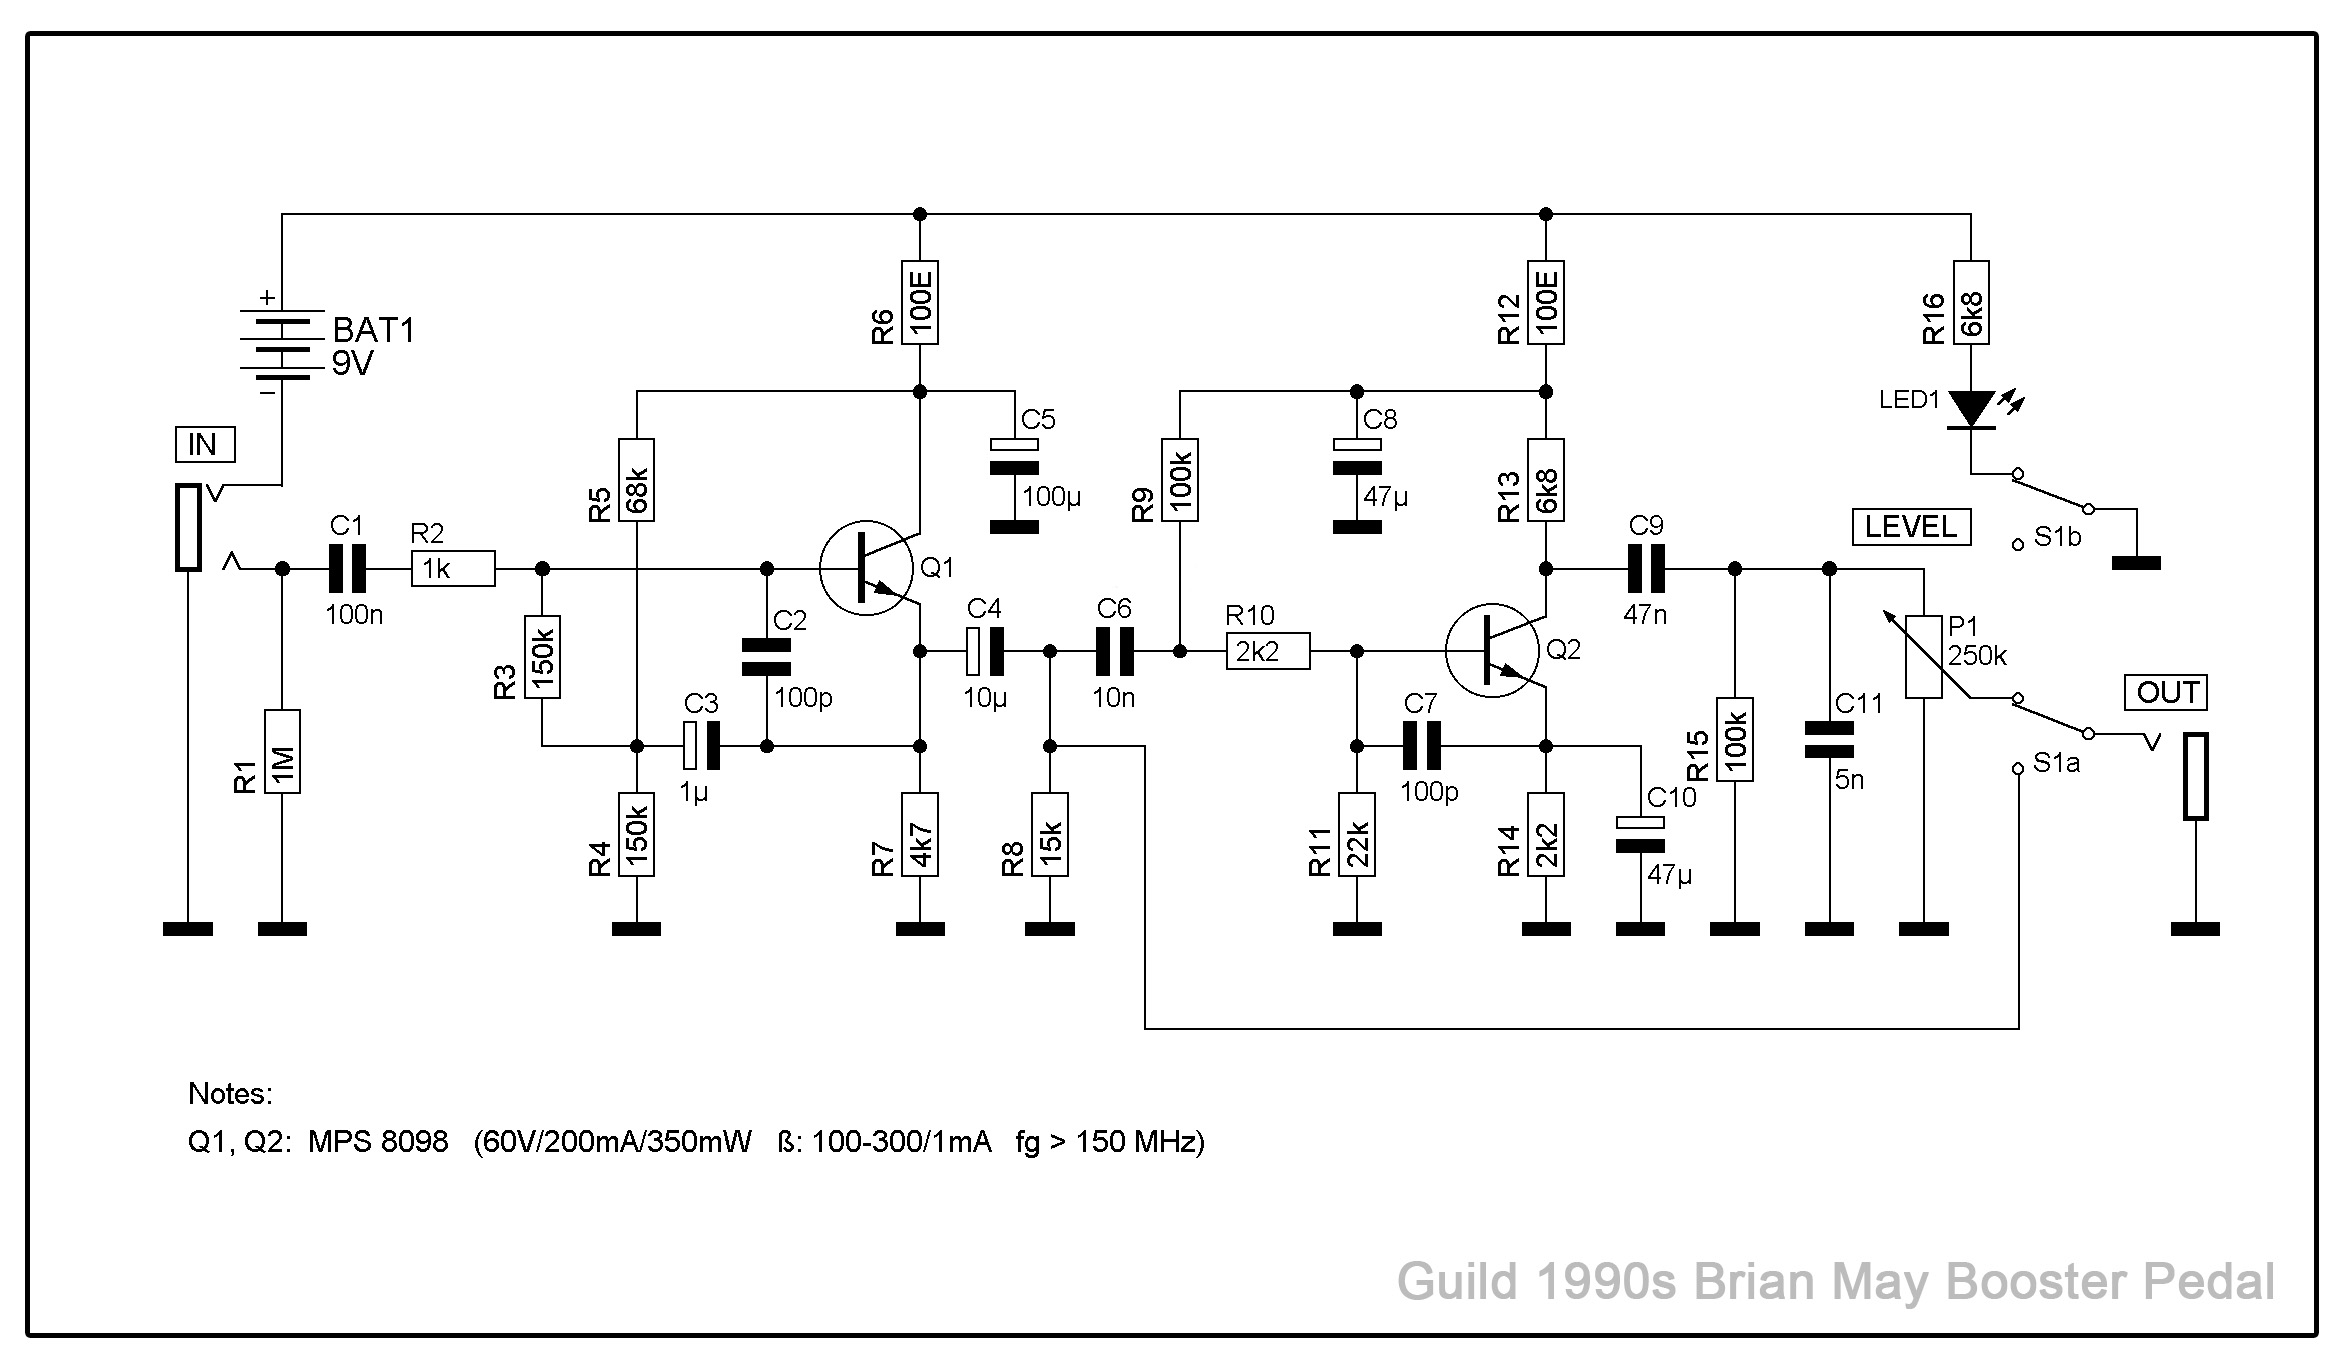 Guild Brian May Treble Booster Pedals | GAD's Ramblings on boost pedal pcb, turbocharger schematic, boost pedal placement, klon schematic, compressor schematic, guitar switcher schematic, ibanez tube screamer schematic, boost controller schematic, boost pump schematic, lpb-1 schematic, amp selector schematic, distortion schematic, fender blender schematic, equalizer schematic, 11 amp schematic, pneumatic jack hammer schematic, npn schematic, pressure regulator schematic, colorsound power boost schematic, boost regulator schematic,